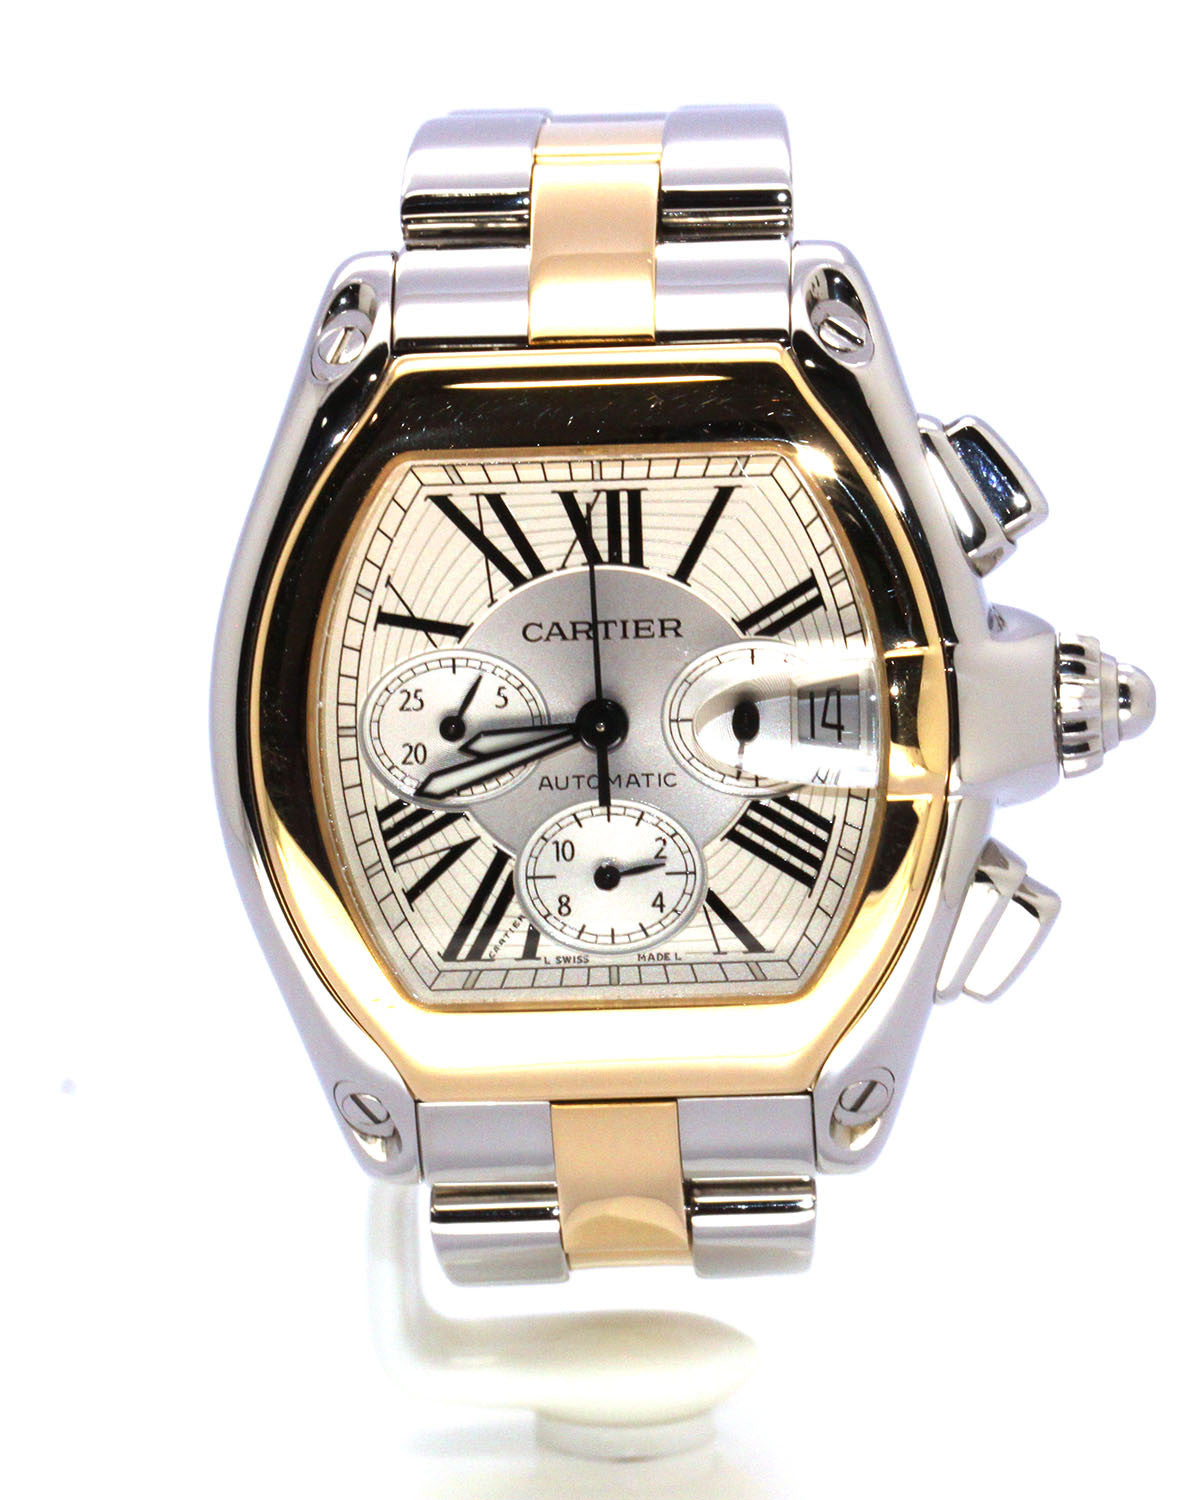 CARTIER ROADSTER TWO-TONE ROMAN NUMERAL